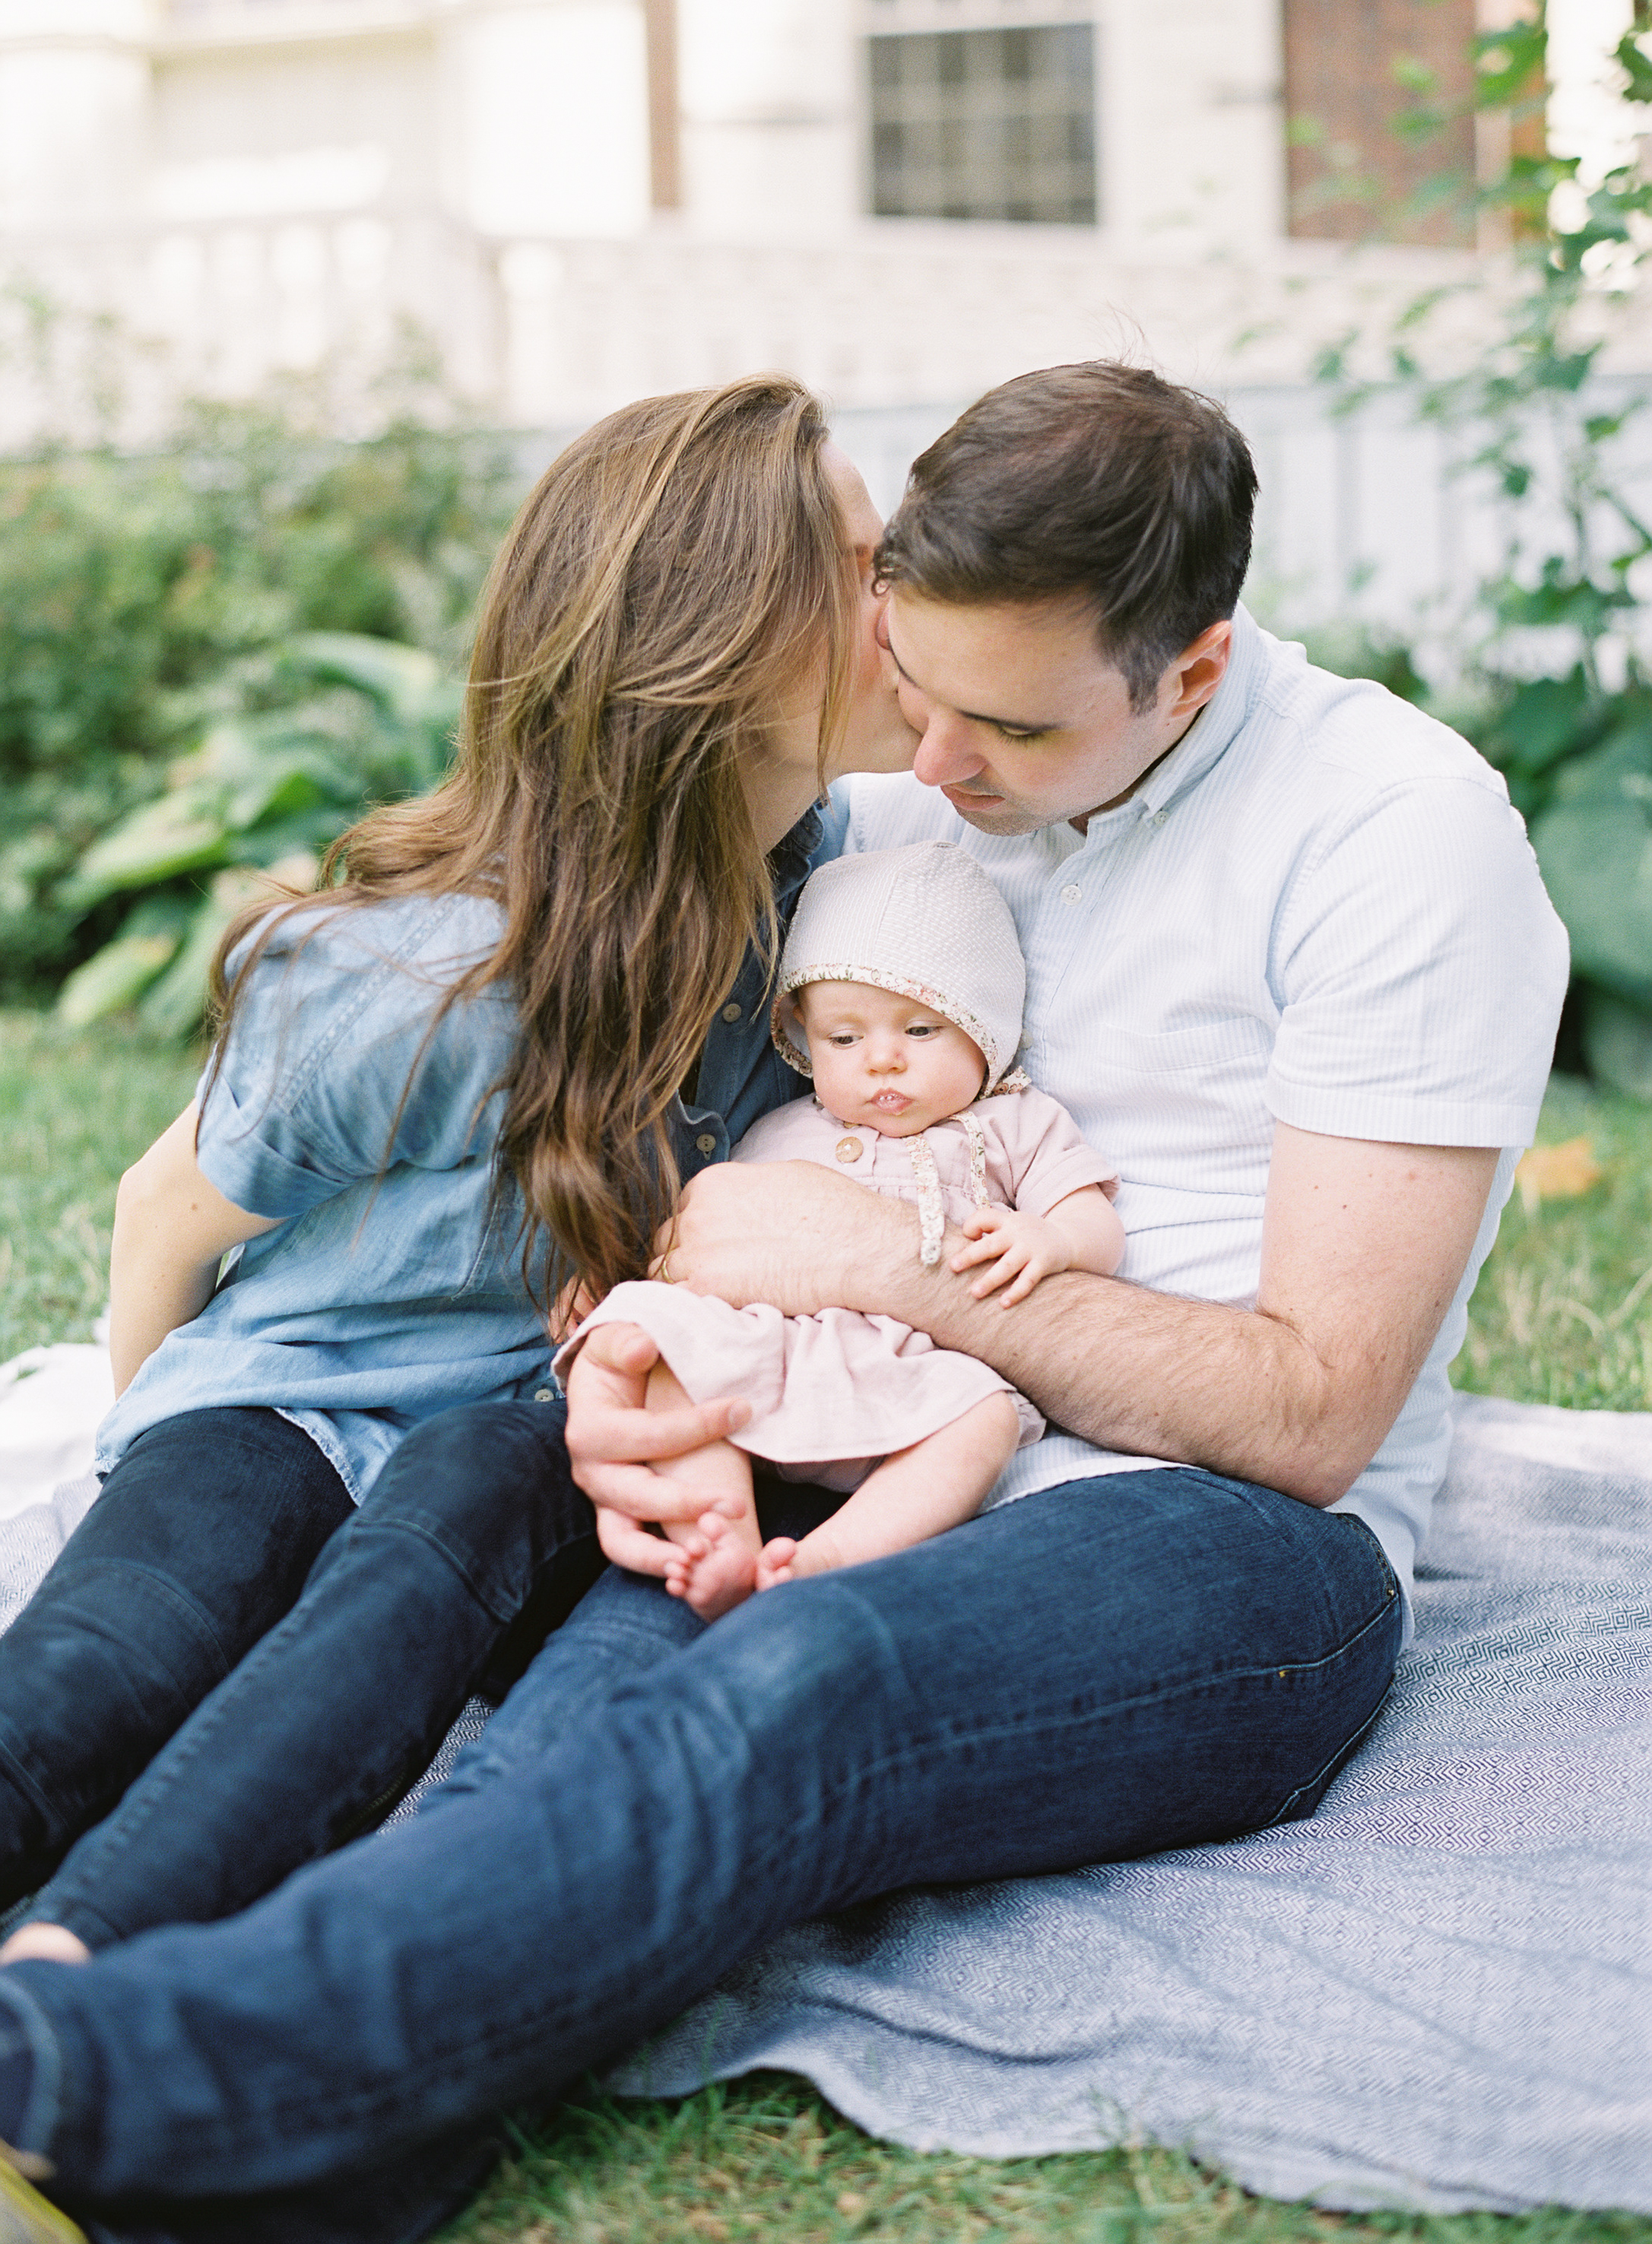 Meghan Mehan Photography - San Francisco Newborn and Family Photographer 017.jpg